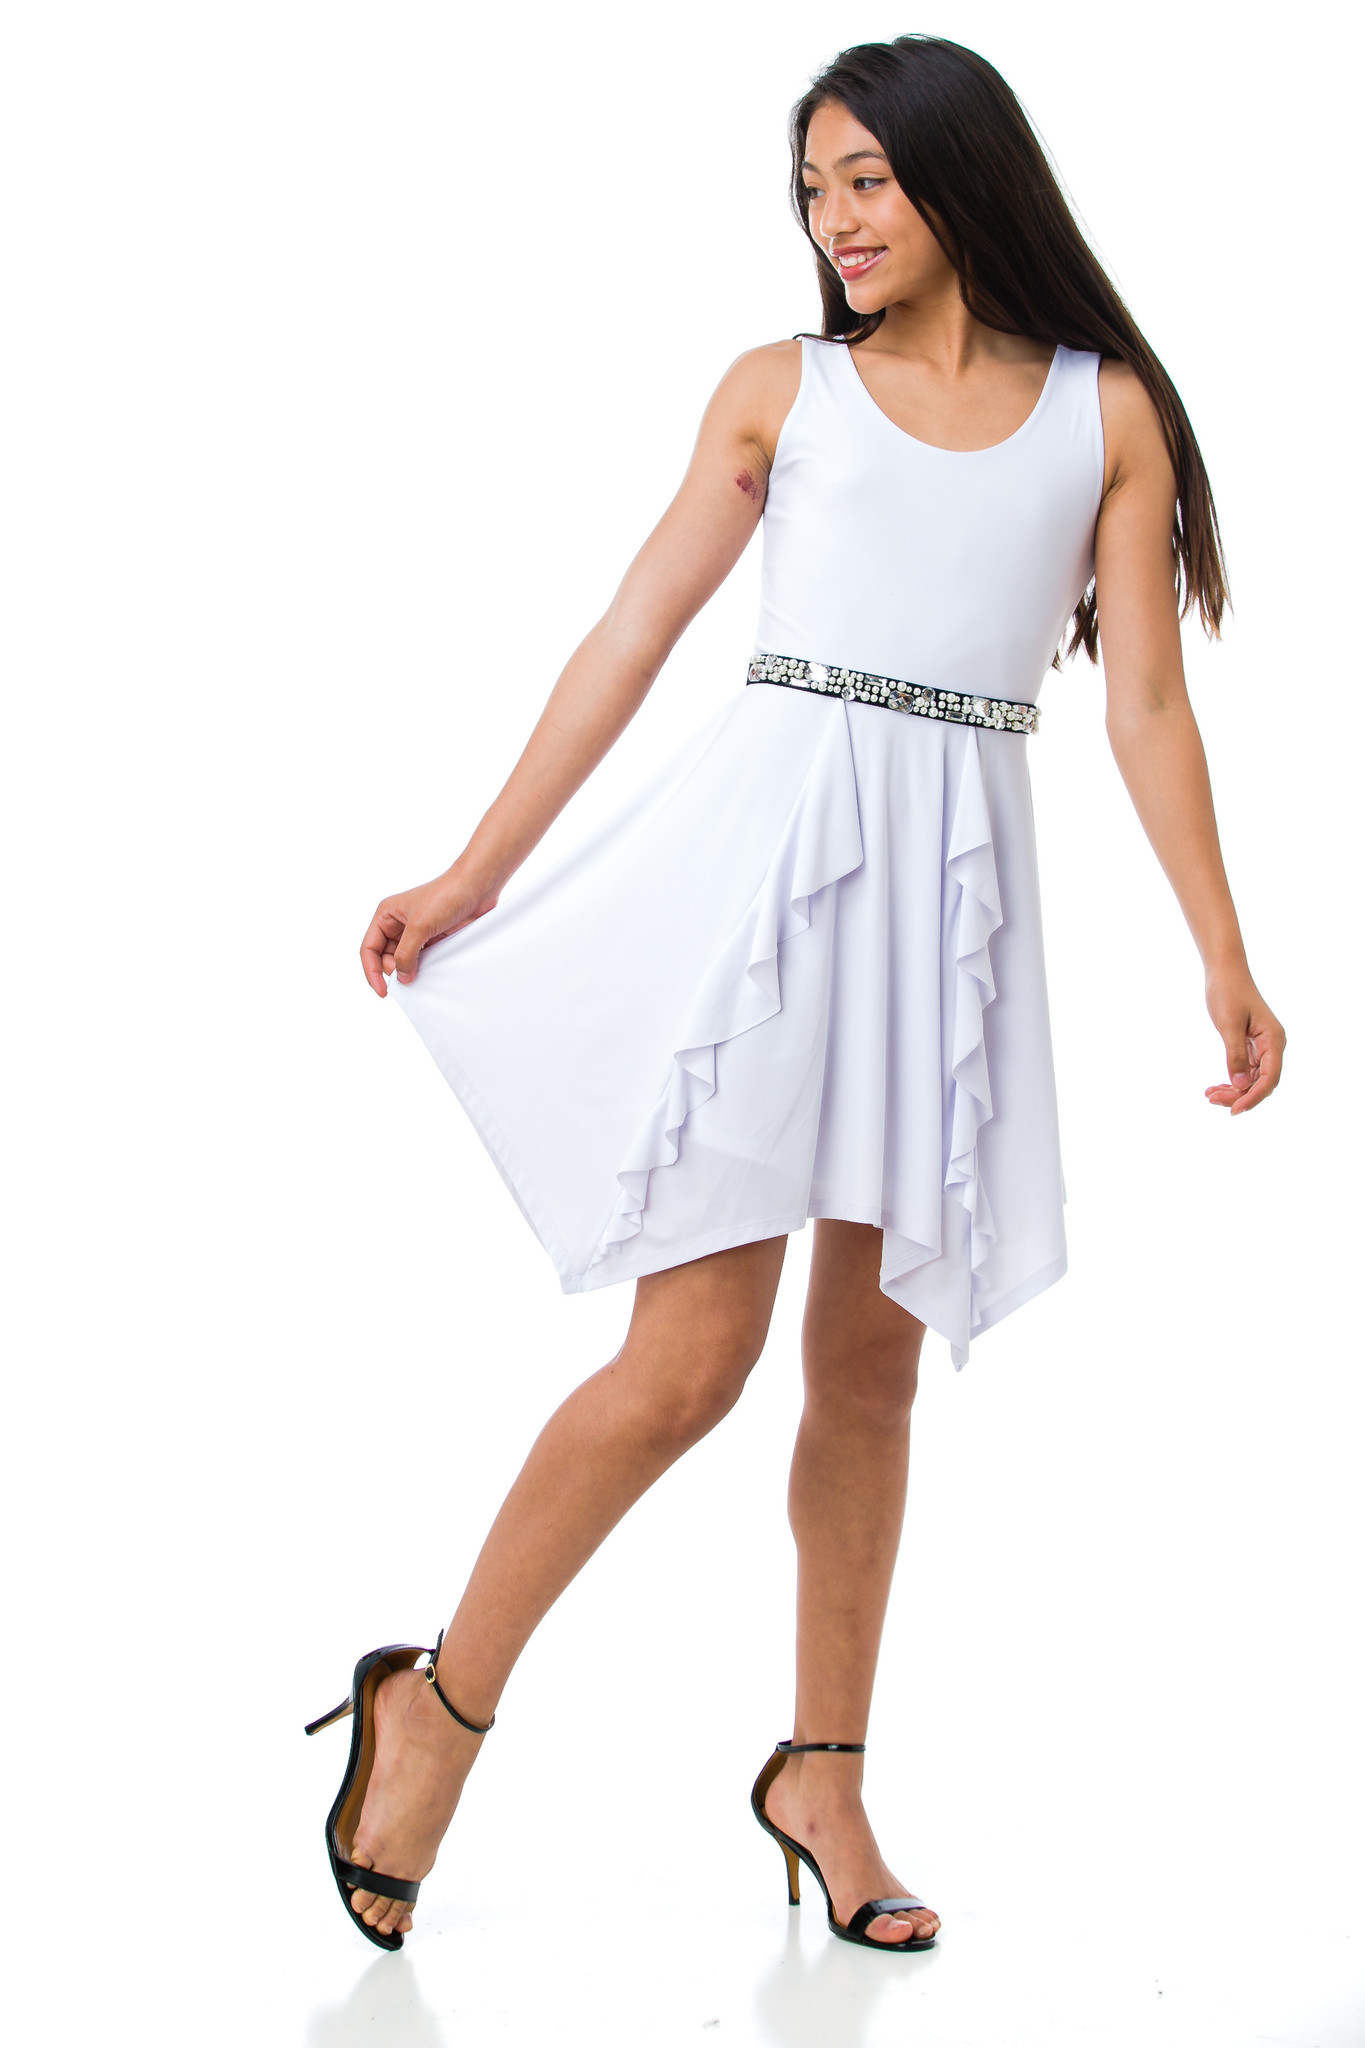 Tween Girls White Hank Hem Dress with Ruffle Skirt with added black belt to go with the Report heels.